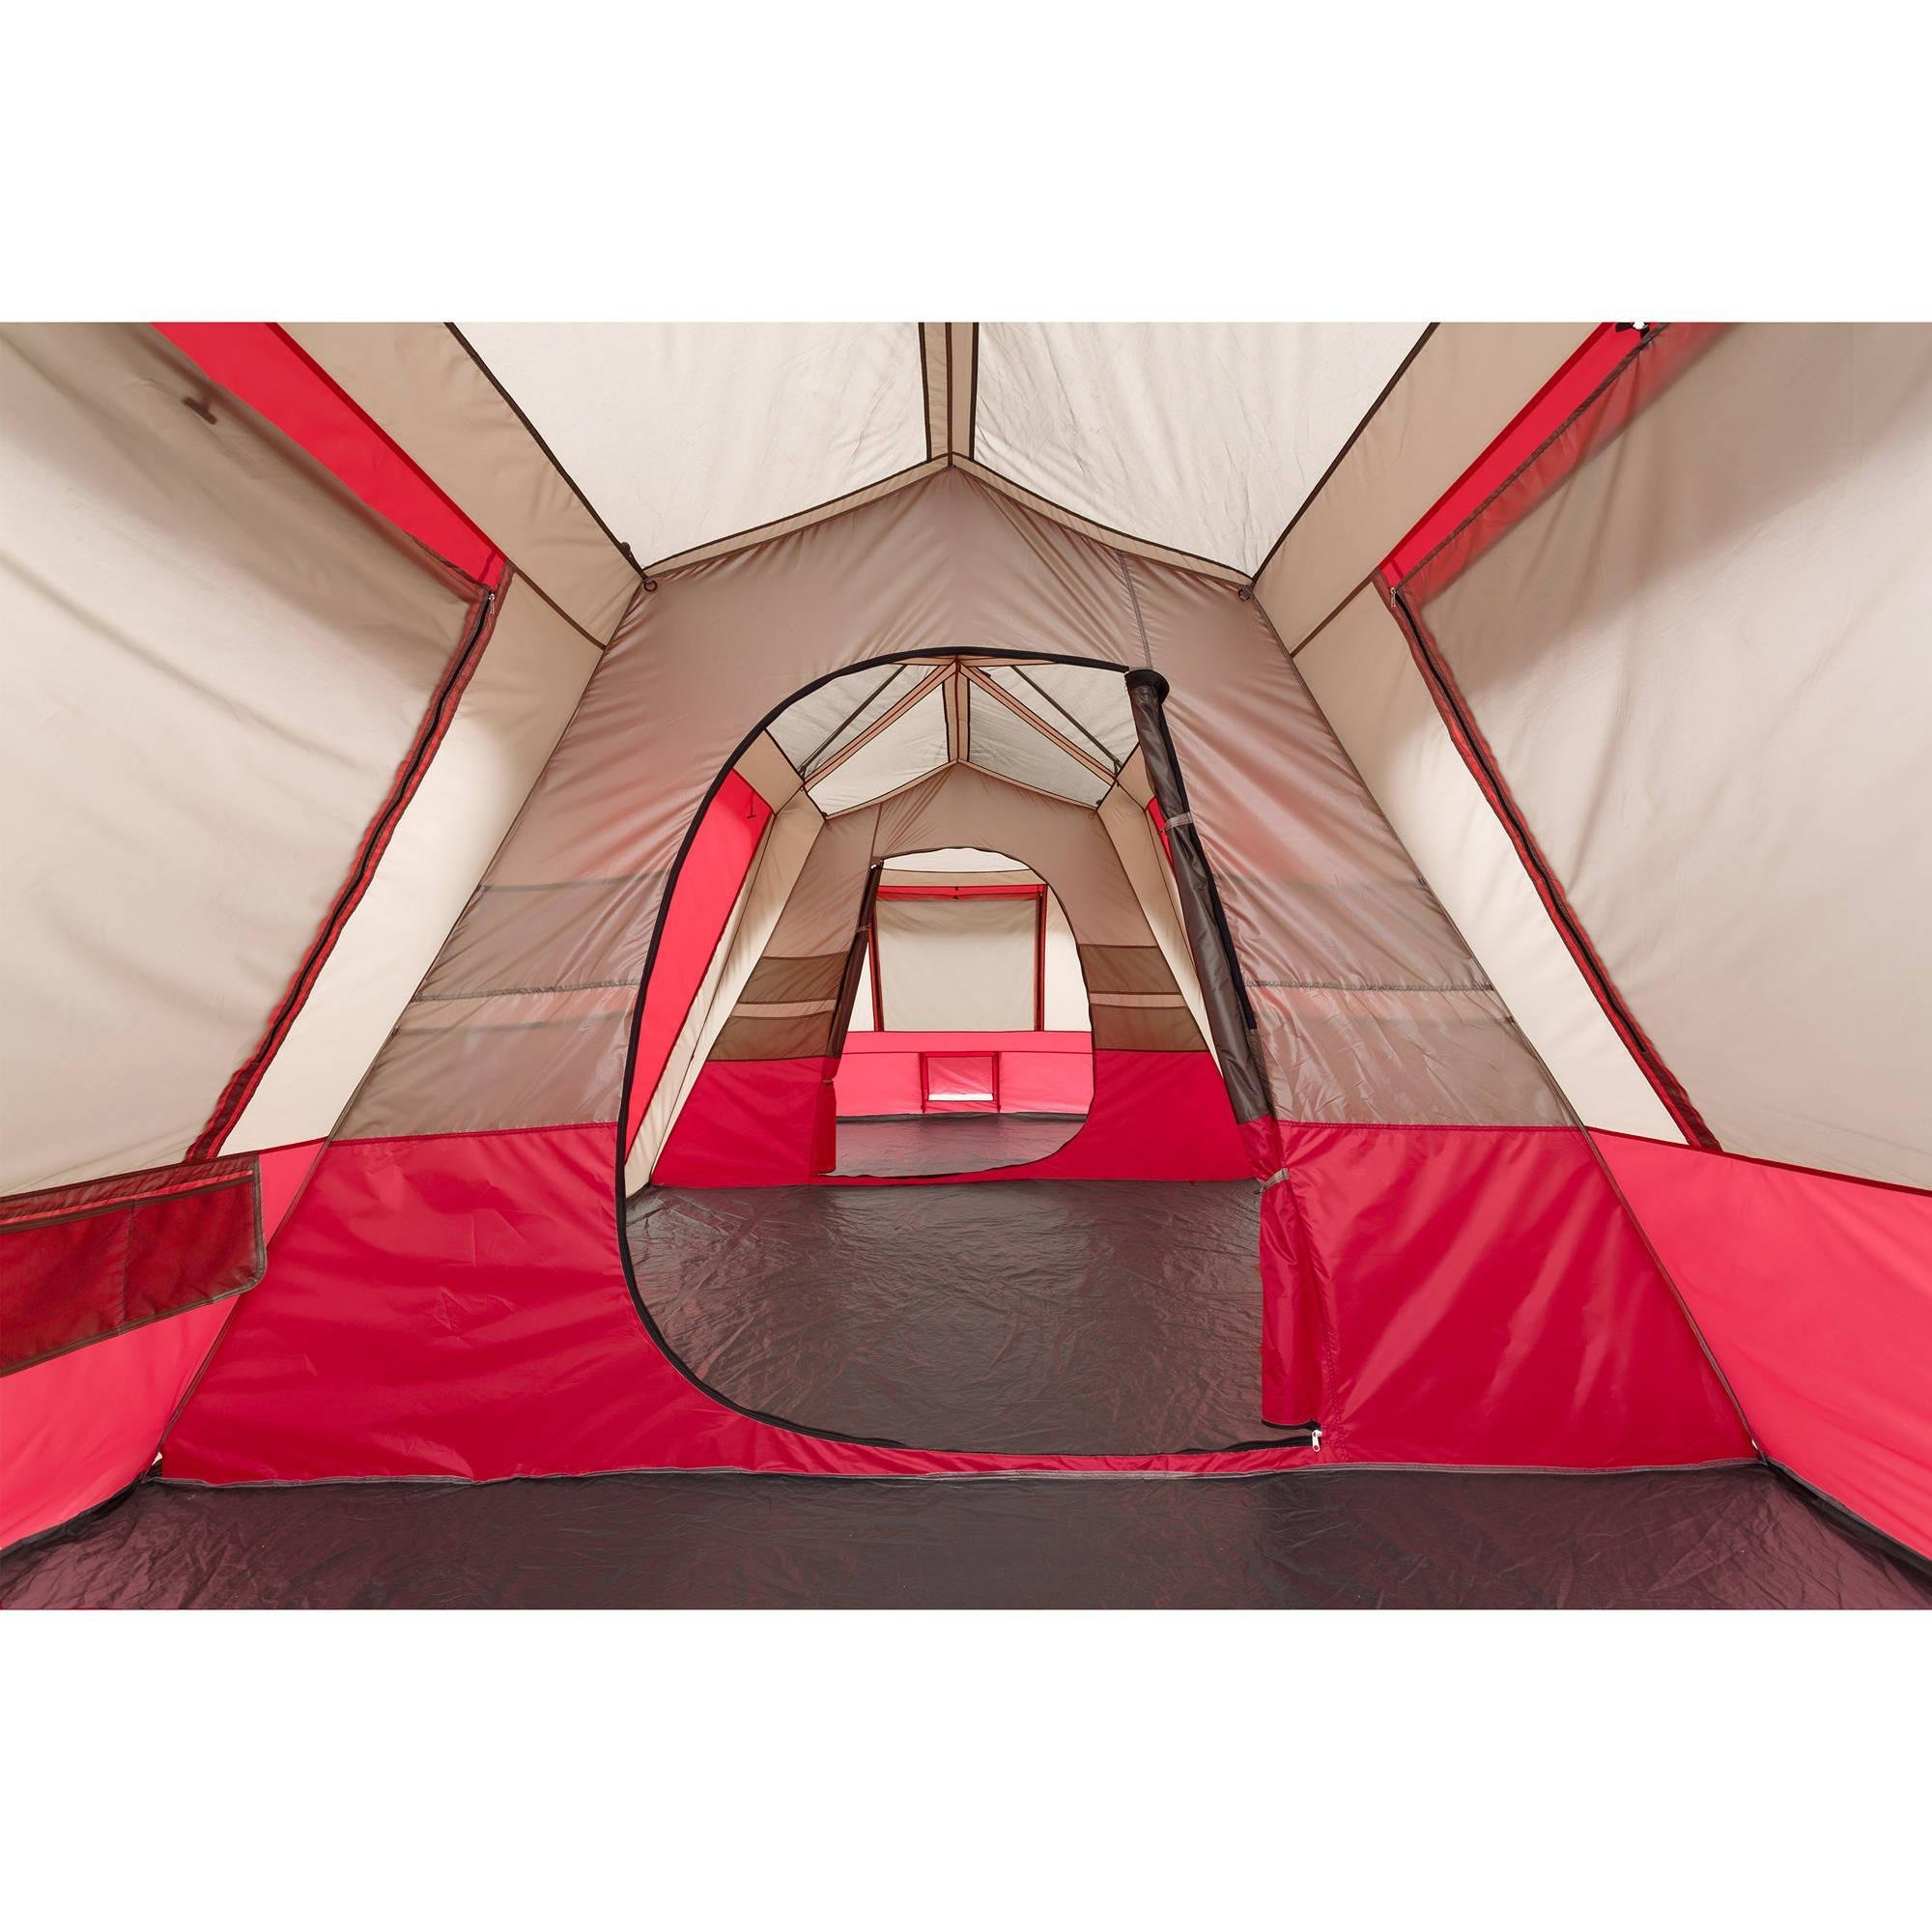 Best 53 3 Bedroom Tent Walmart Tents At Walmart For Sale With Pictures